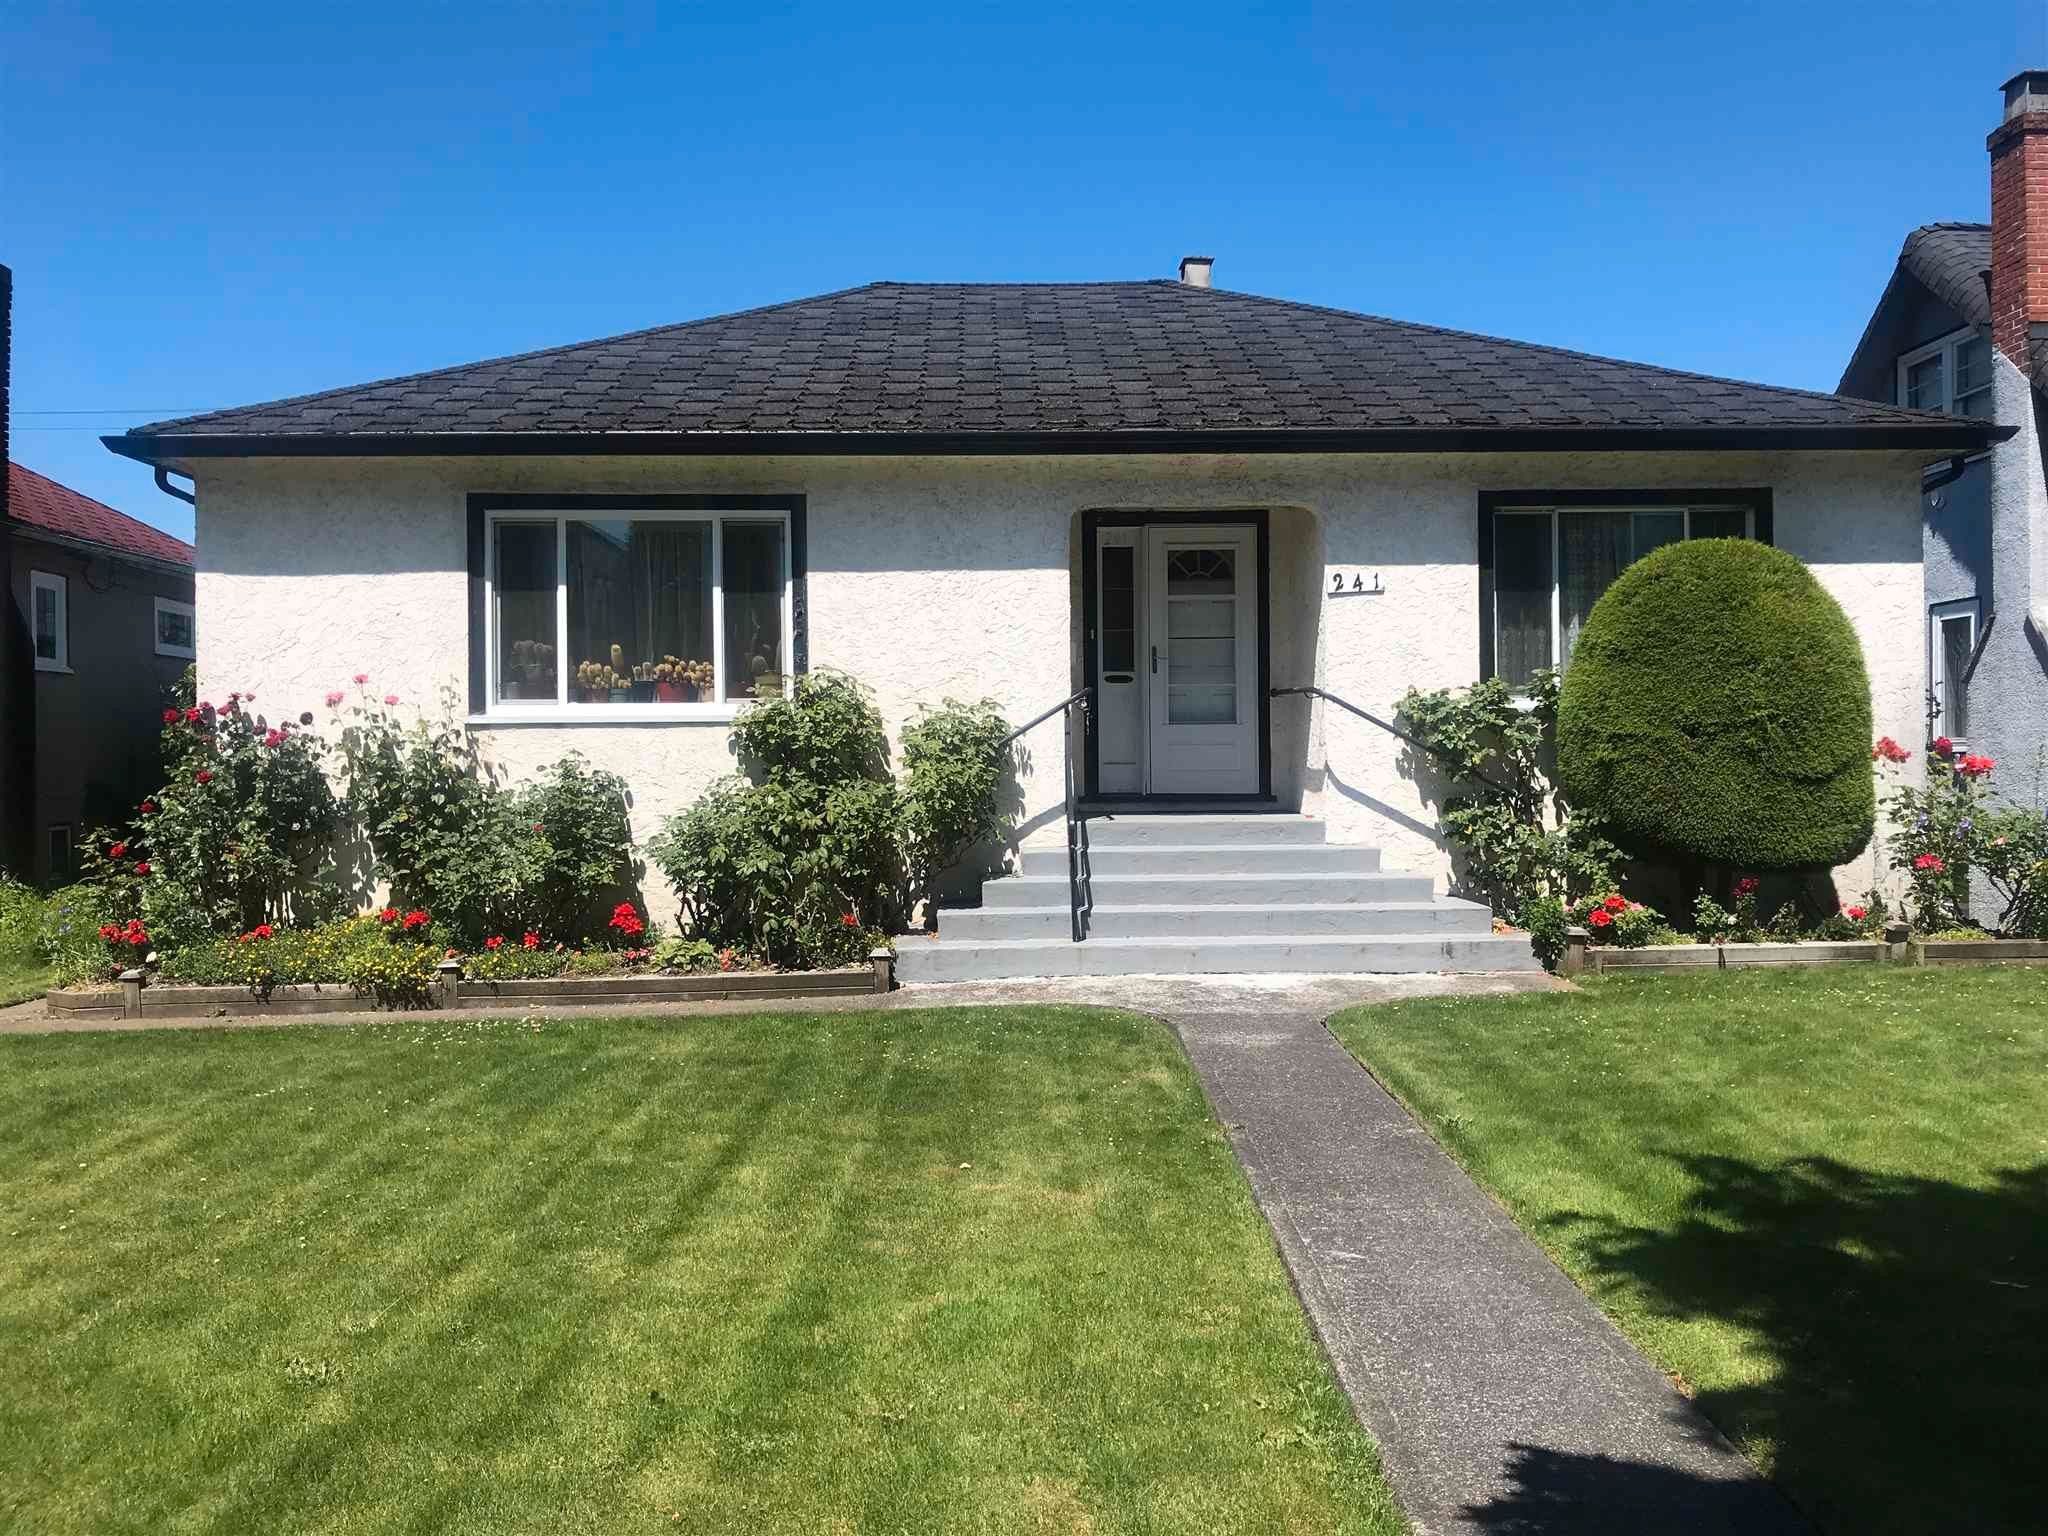 Main Photo: 241 W KING EDWARD Avenue in Vancouver: Cambie House for sale (Vancouver West)  : MLS®# R2595115